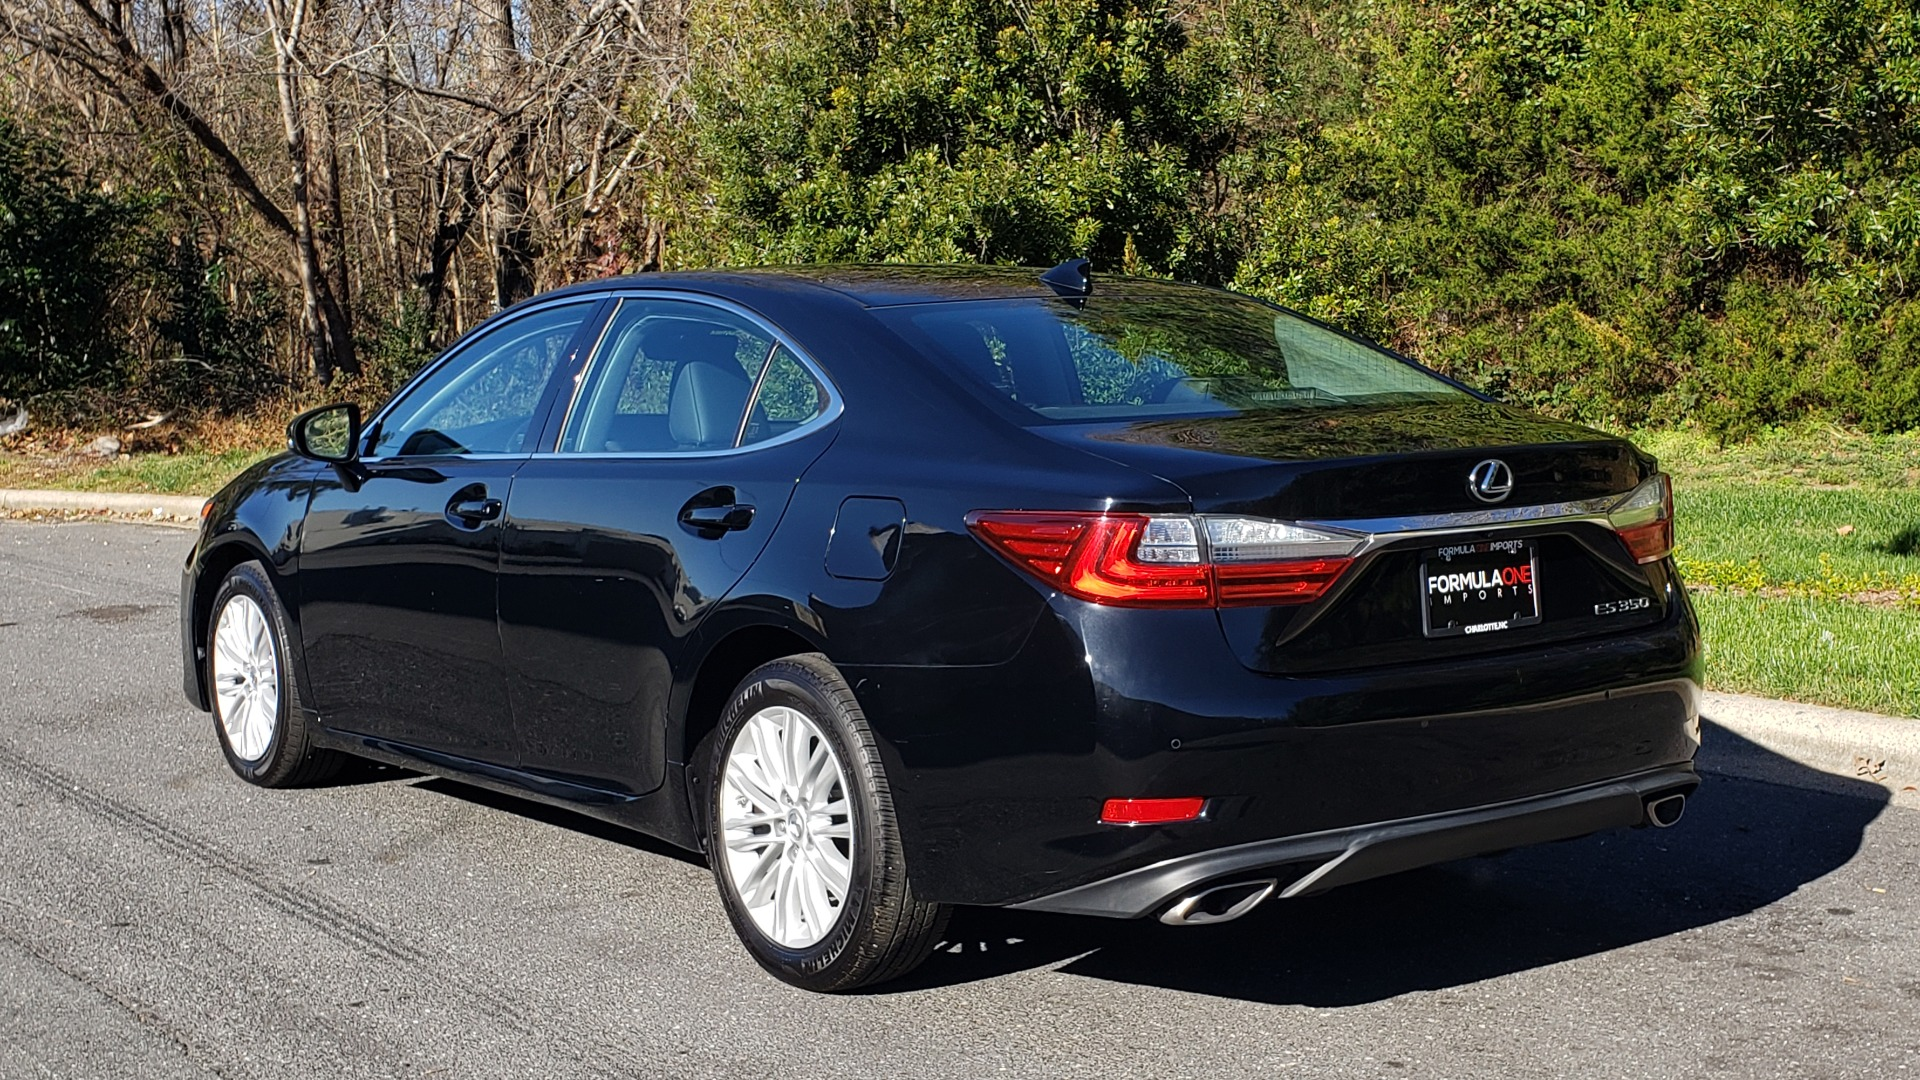 Used 2017 Lexus ES 350 PREMIUM / NAV / SUNROOF / BSM / VENT STS / REARVIEW for sale $24,795 at Formula Imports in Charlotte NC 28227 3